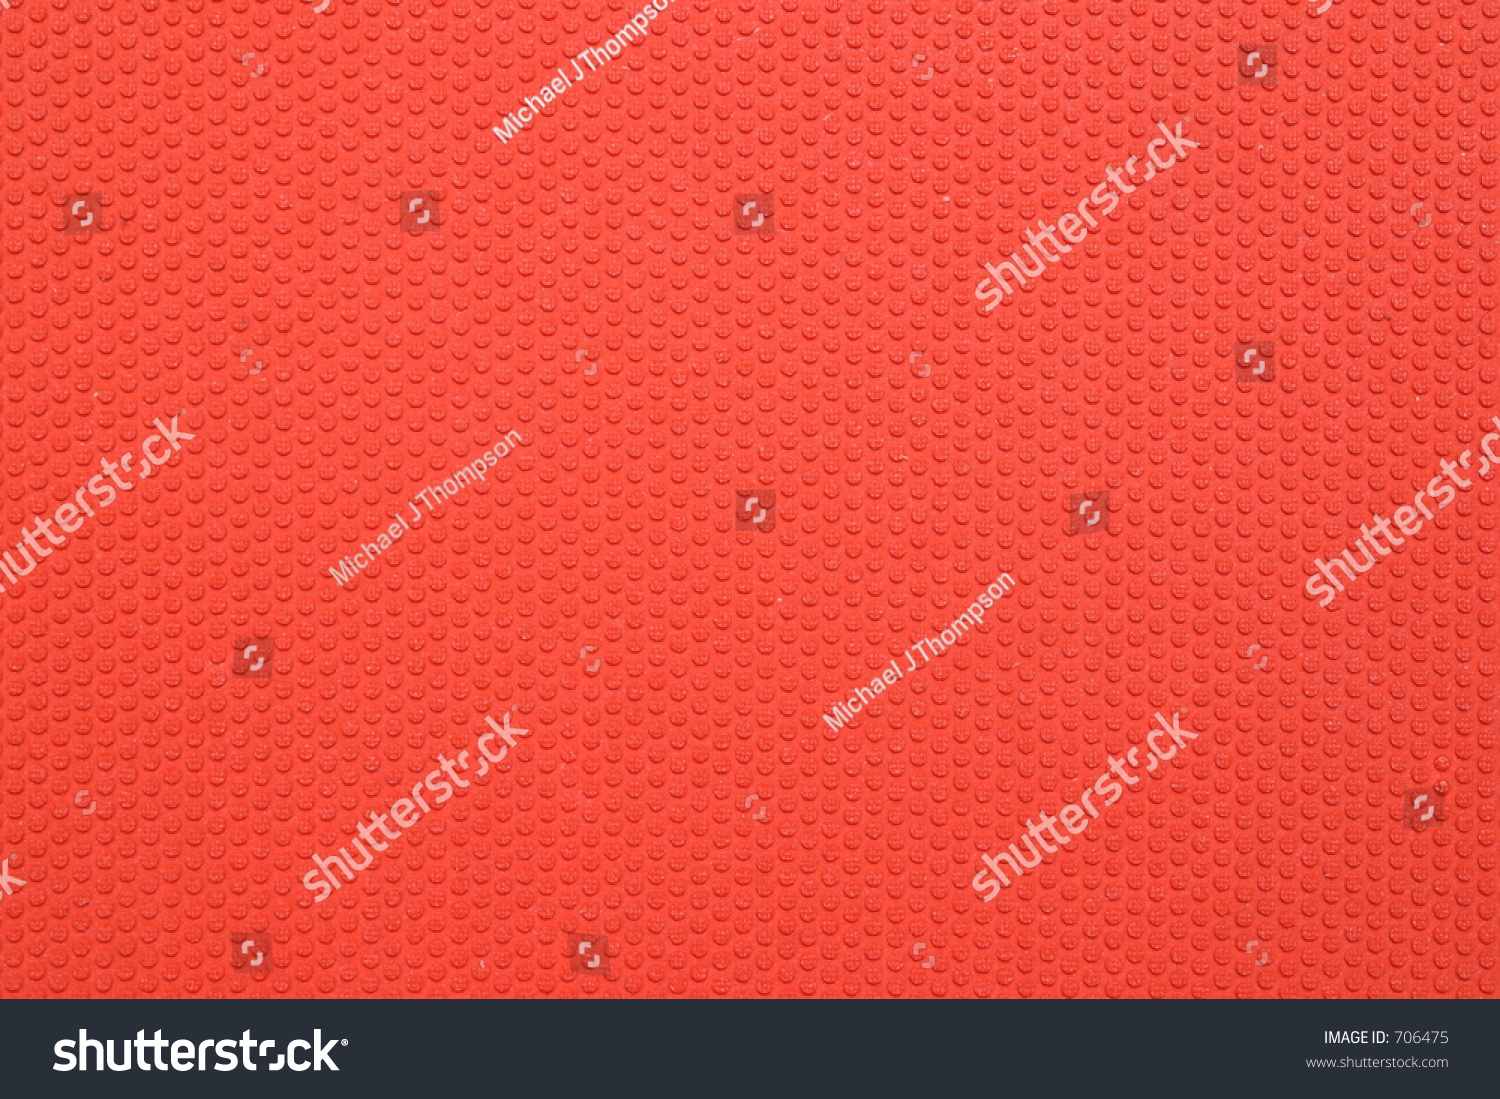 Ping Pong Paddle Texture Stock Photo 706475 Shutterstock